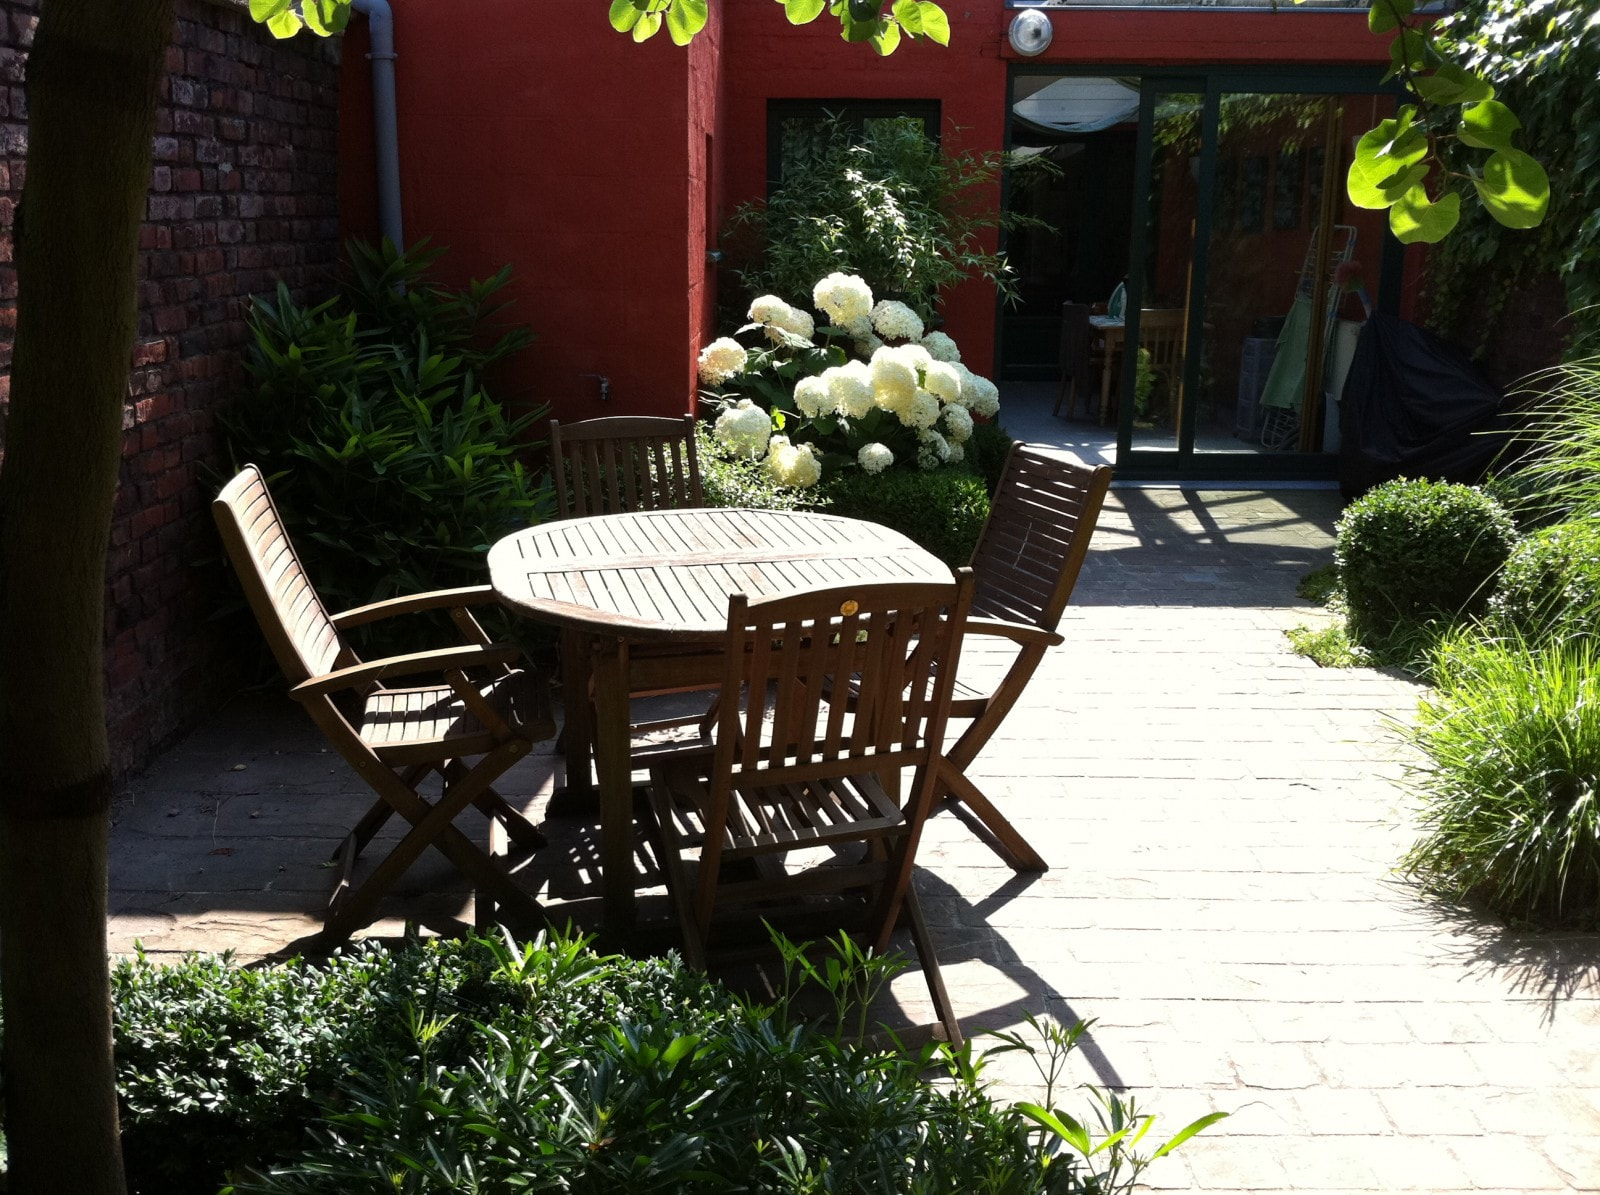 Terrasse gr s rouge tourcoing 59 nord home ext rieur - Piscine creusee contemporaine tourcoing ...